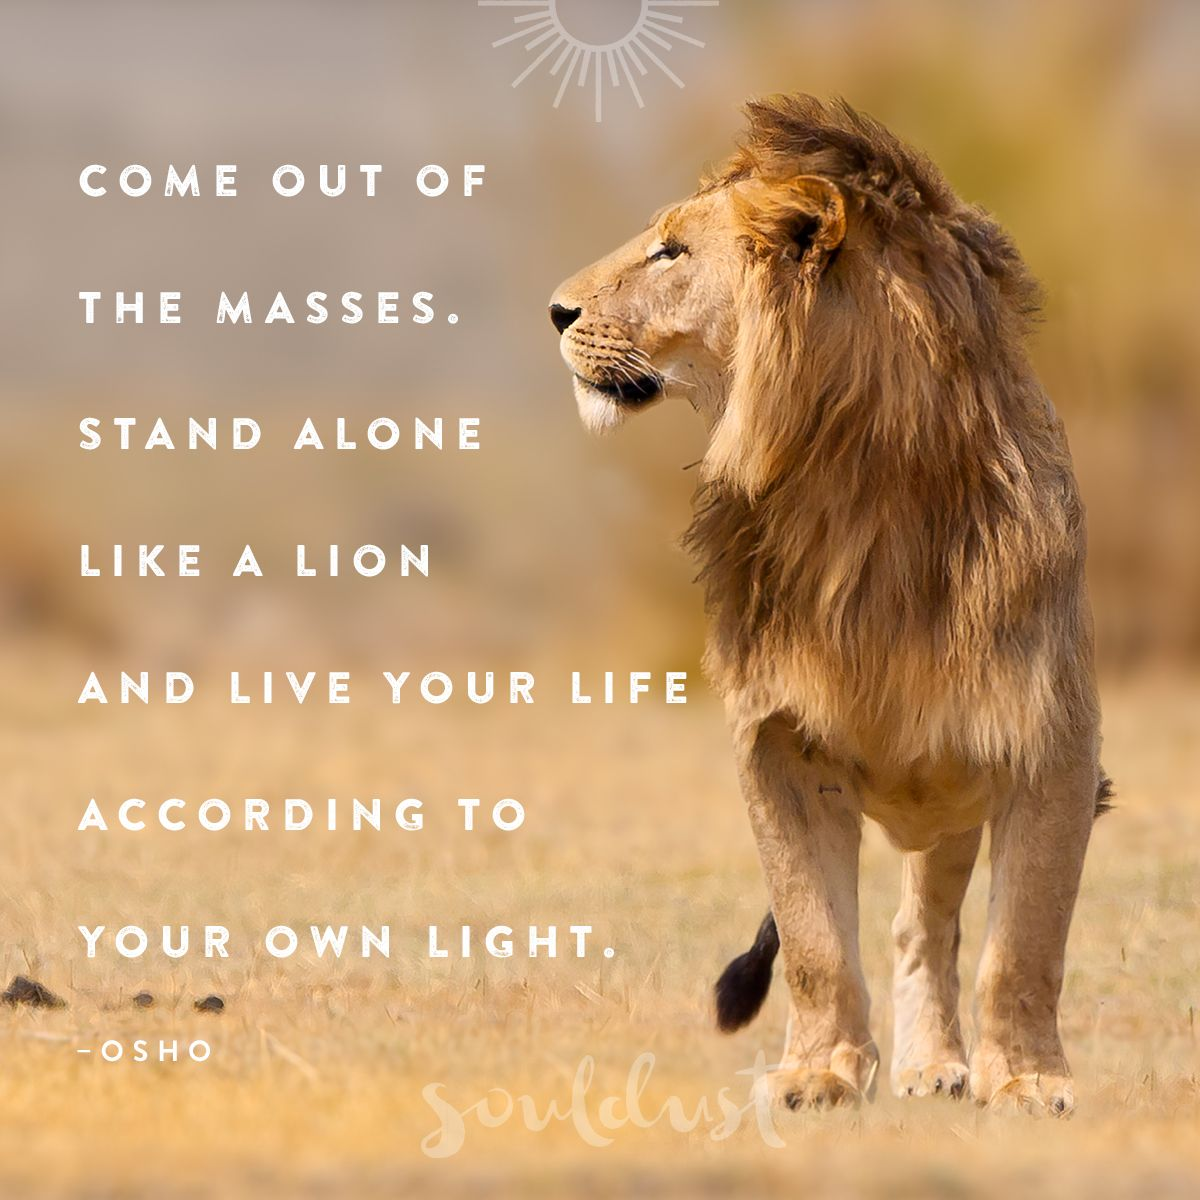 Quotes About Love Relationships: Stand Alone Like A Lion And Live Your Life According To